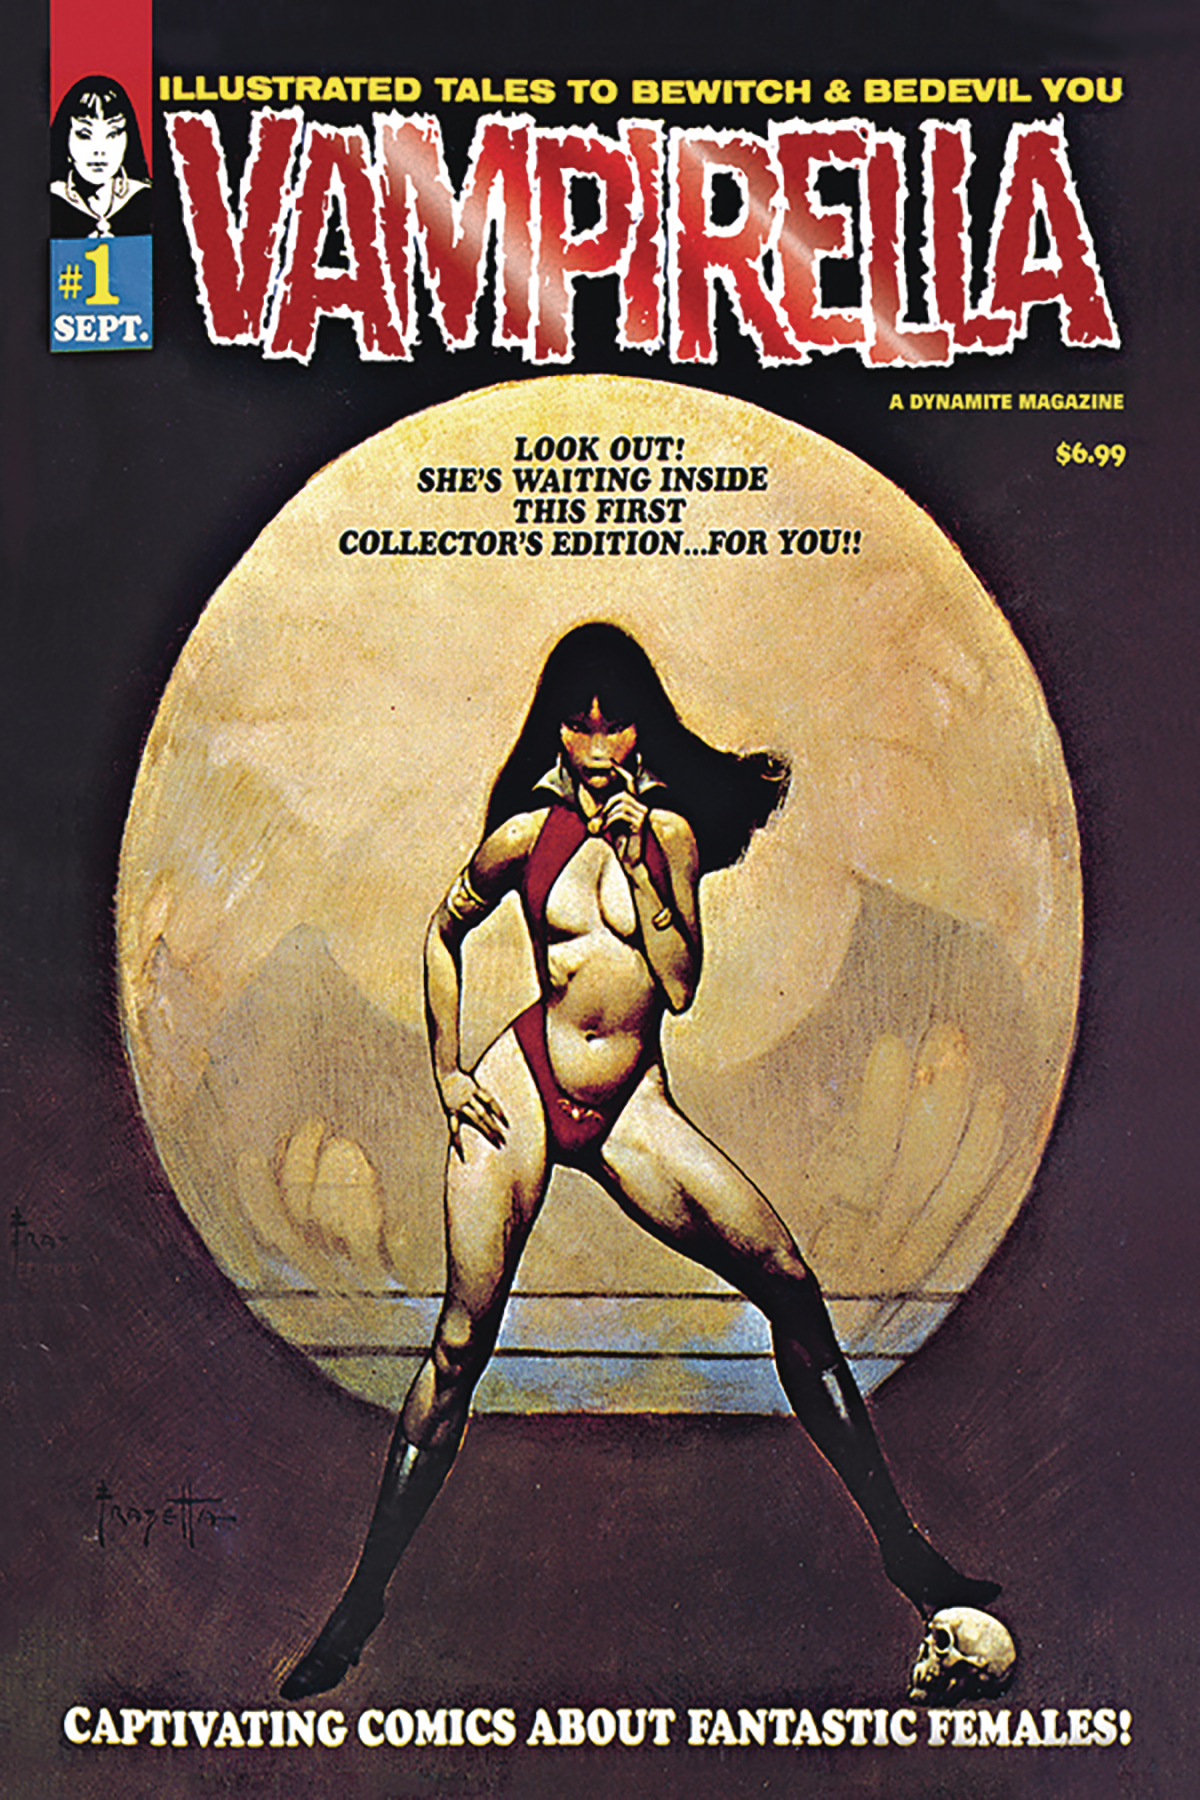 VAMPIRELLA #1 1969 REPLICA ED LTD RED FOIL CVR